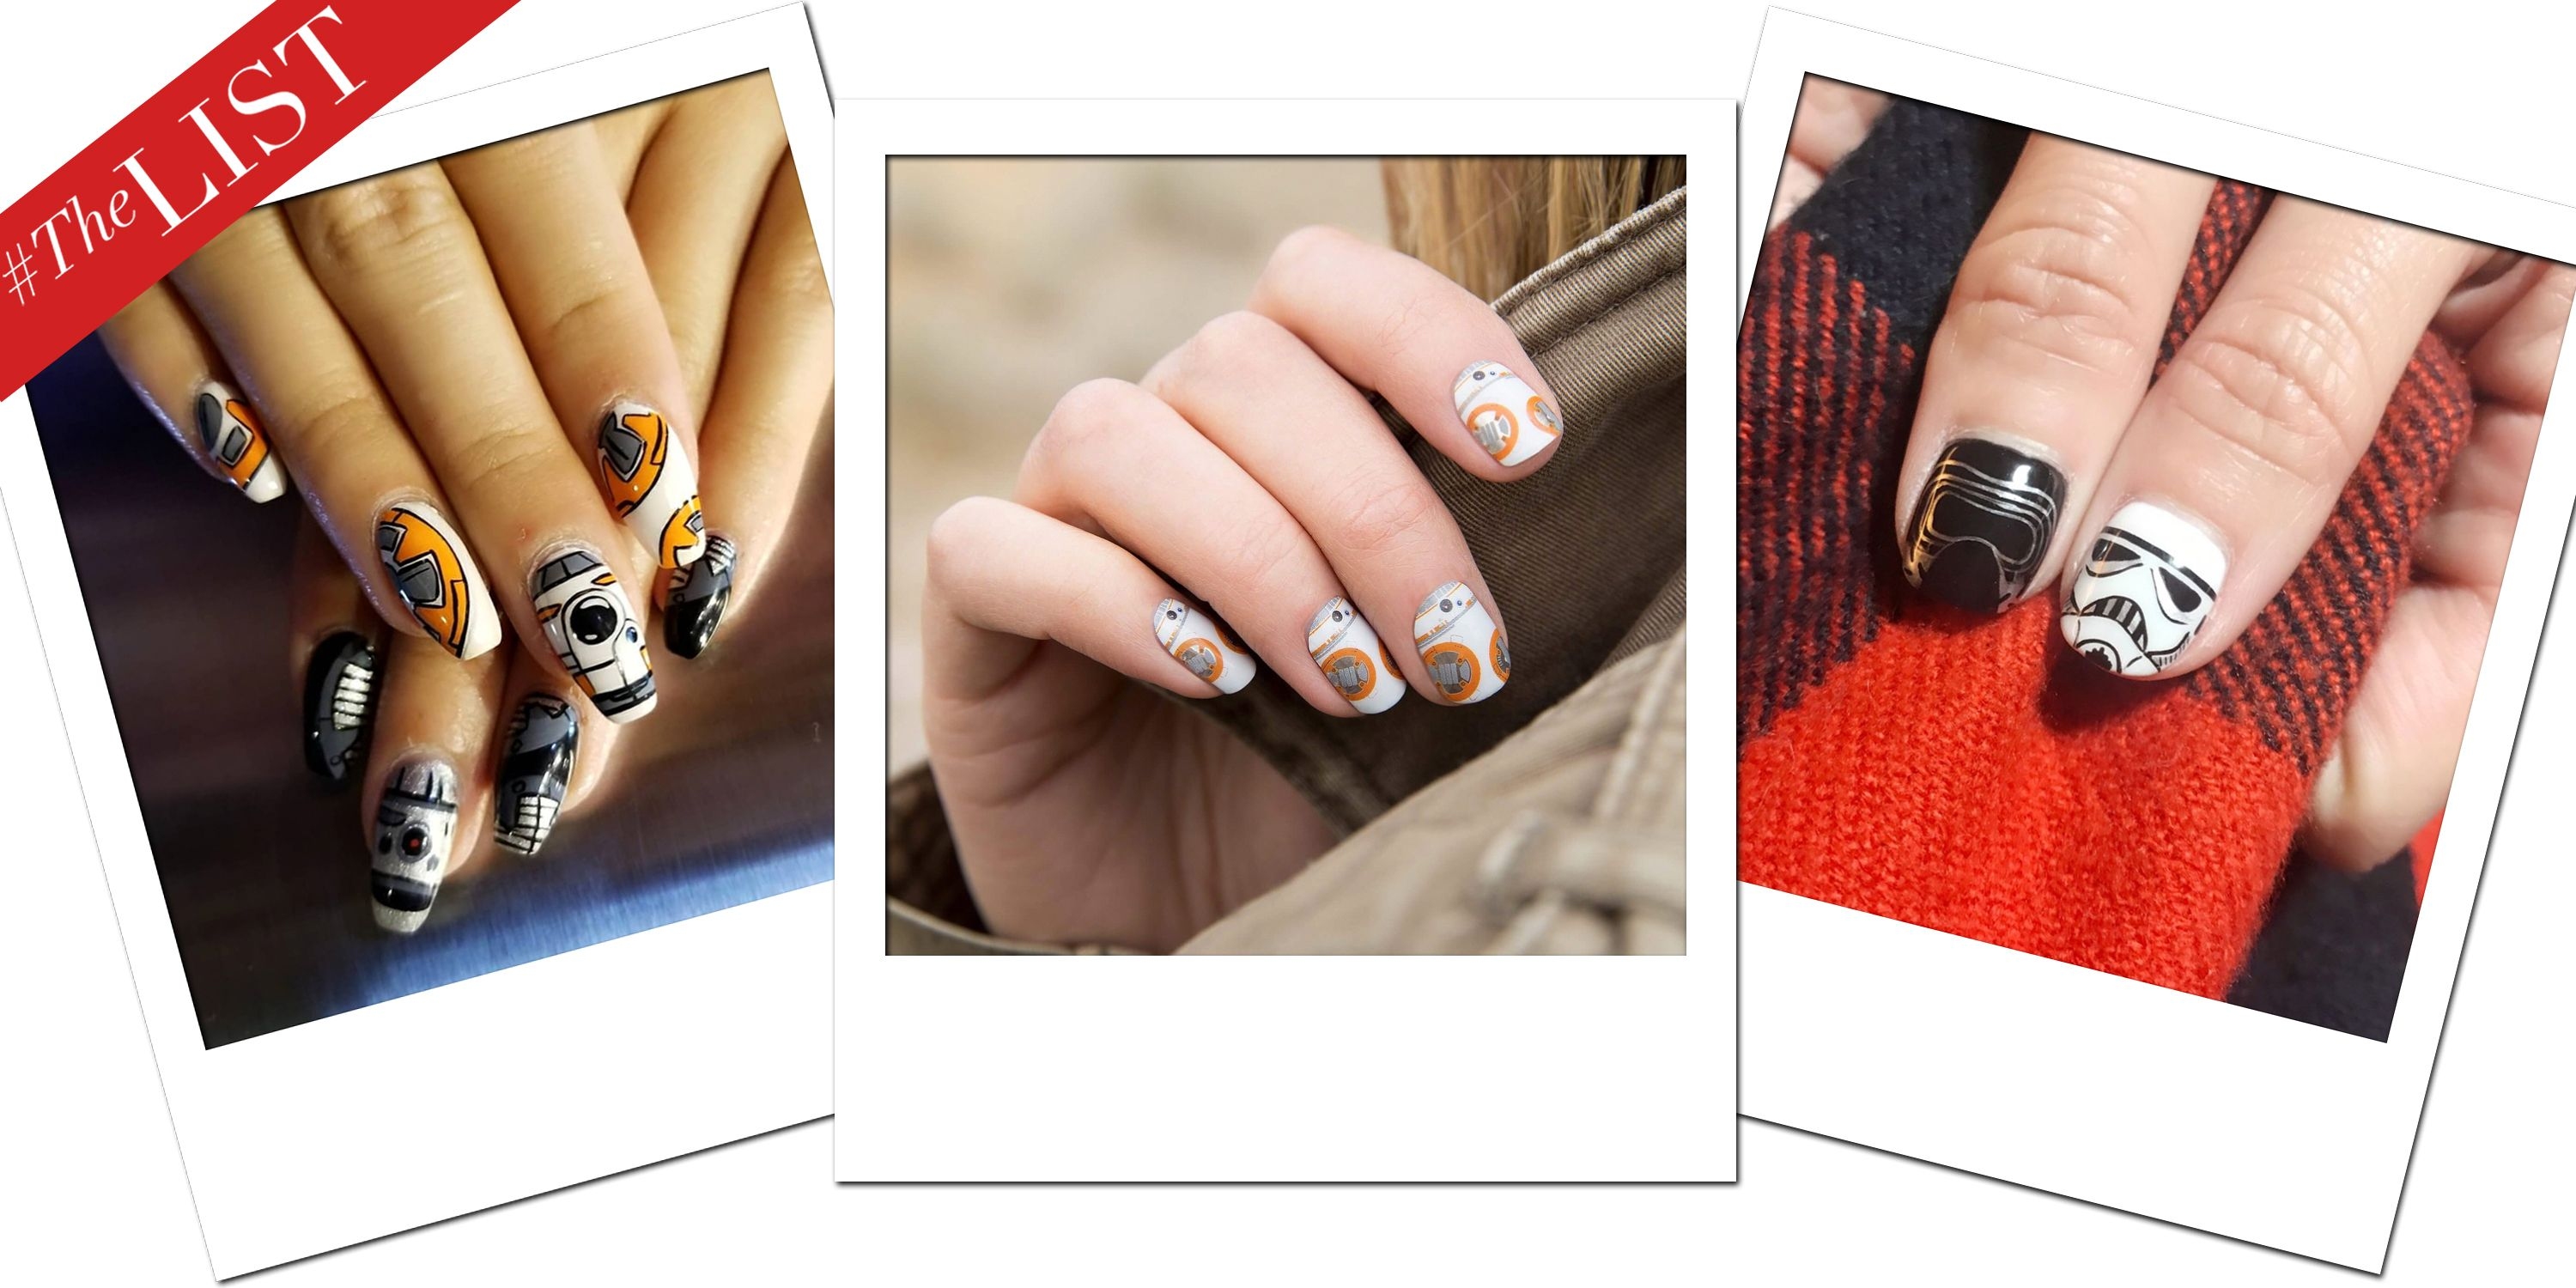 The Force Is Strong With These Crazy Cool Nail Designs